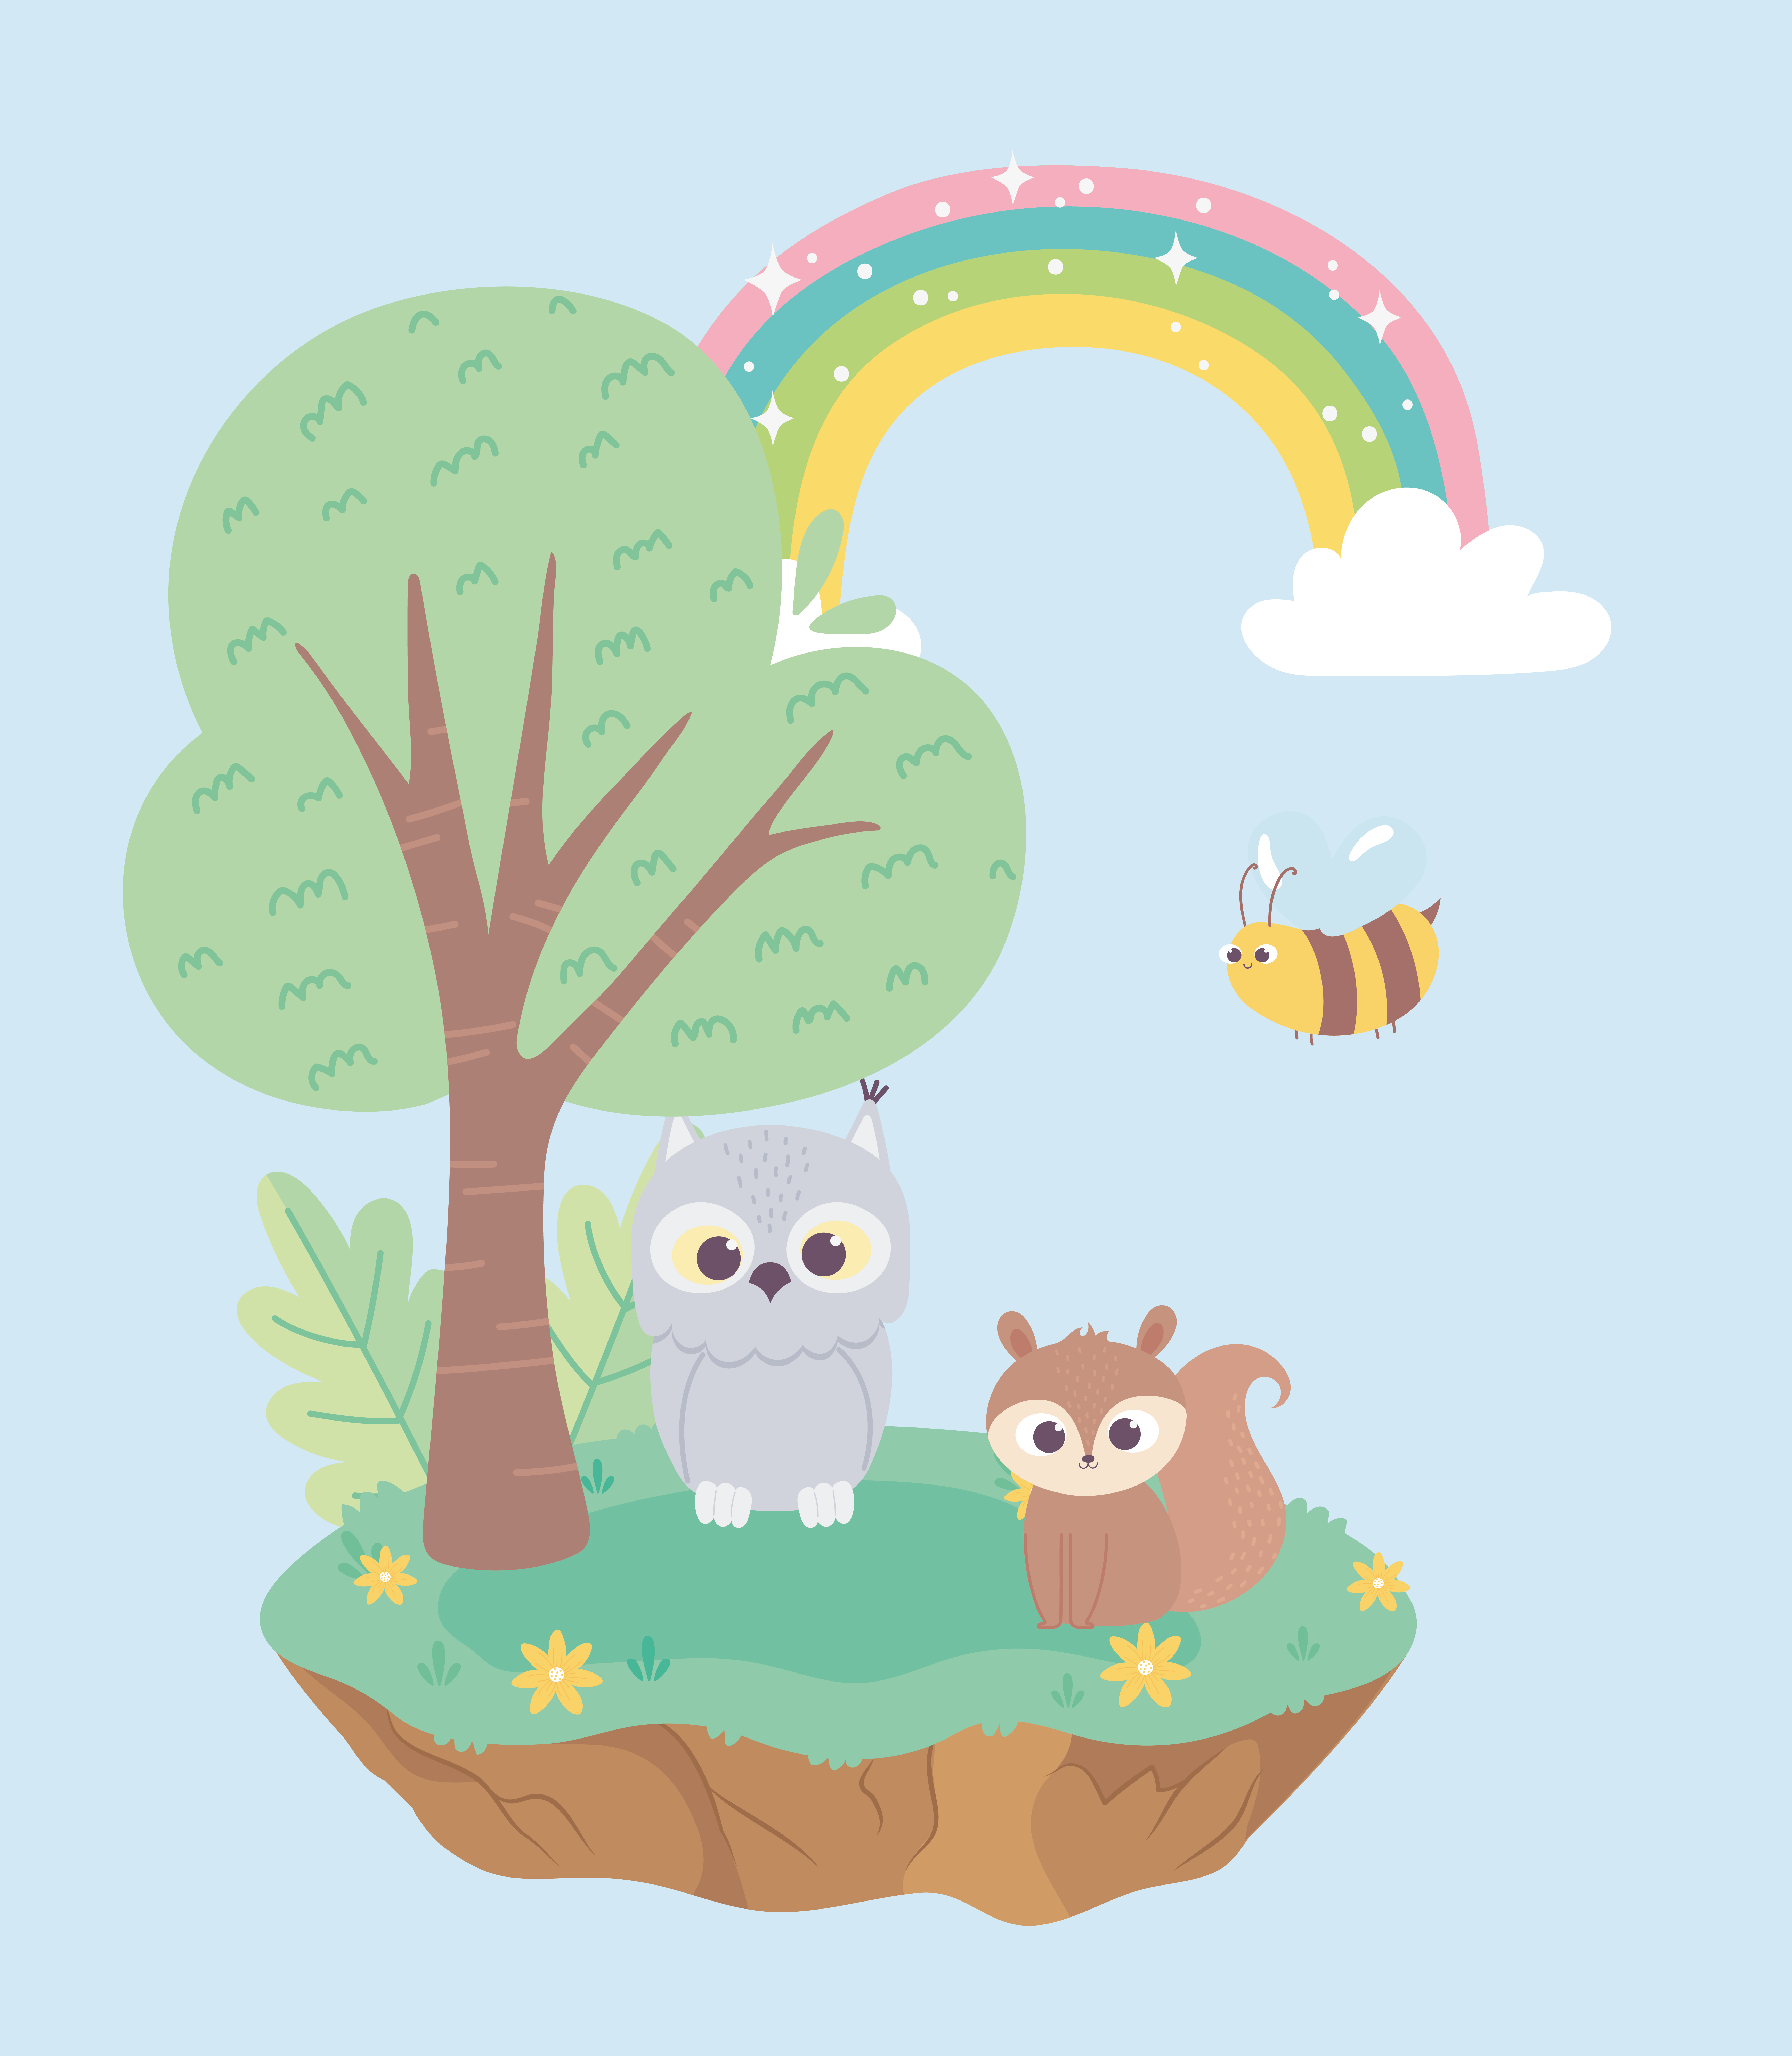 Little Squirrel Owl And Bee Animals Flowers Tree Cartoon Download Free Vectors Clipart Graphics Vector Art Owl backgrounds for twitter bright backgro.owl backgrounds for twitter valentine day.owl backgrounds for twitter owl background.owl backgrounds for twitter backgroundsowl backgrounds for twitter funny cartoon. vecteezy